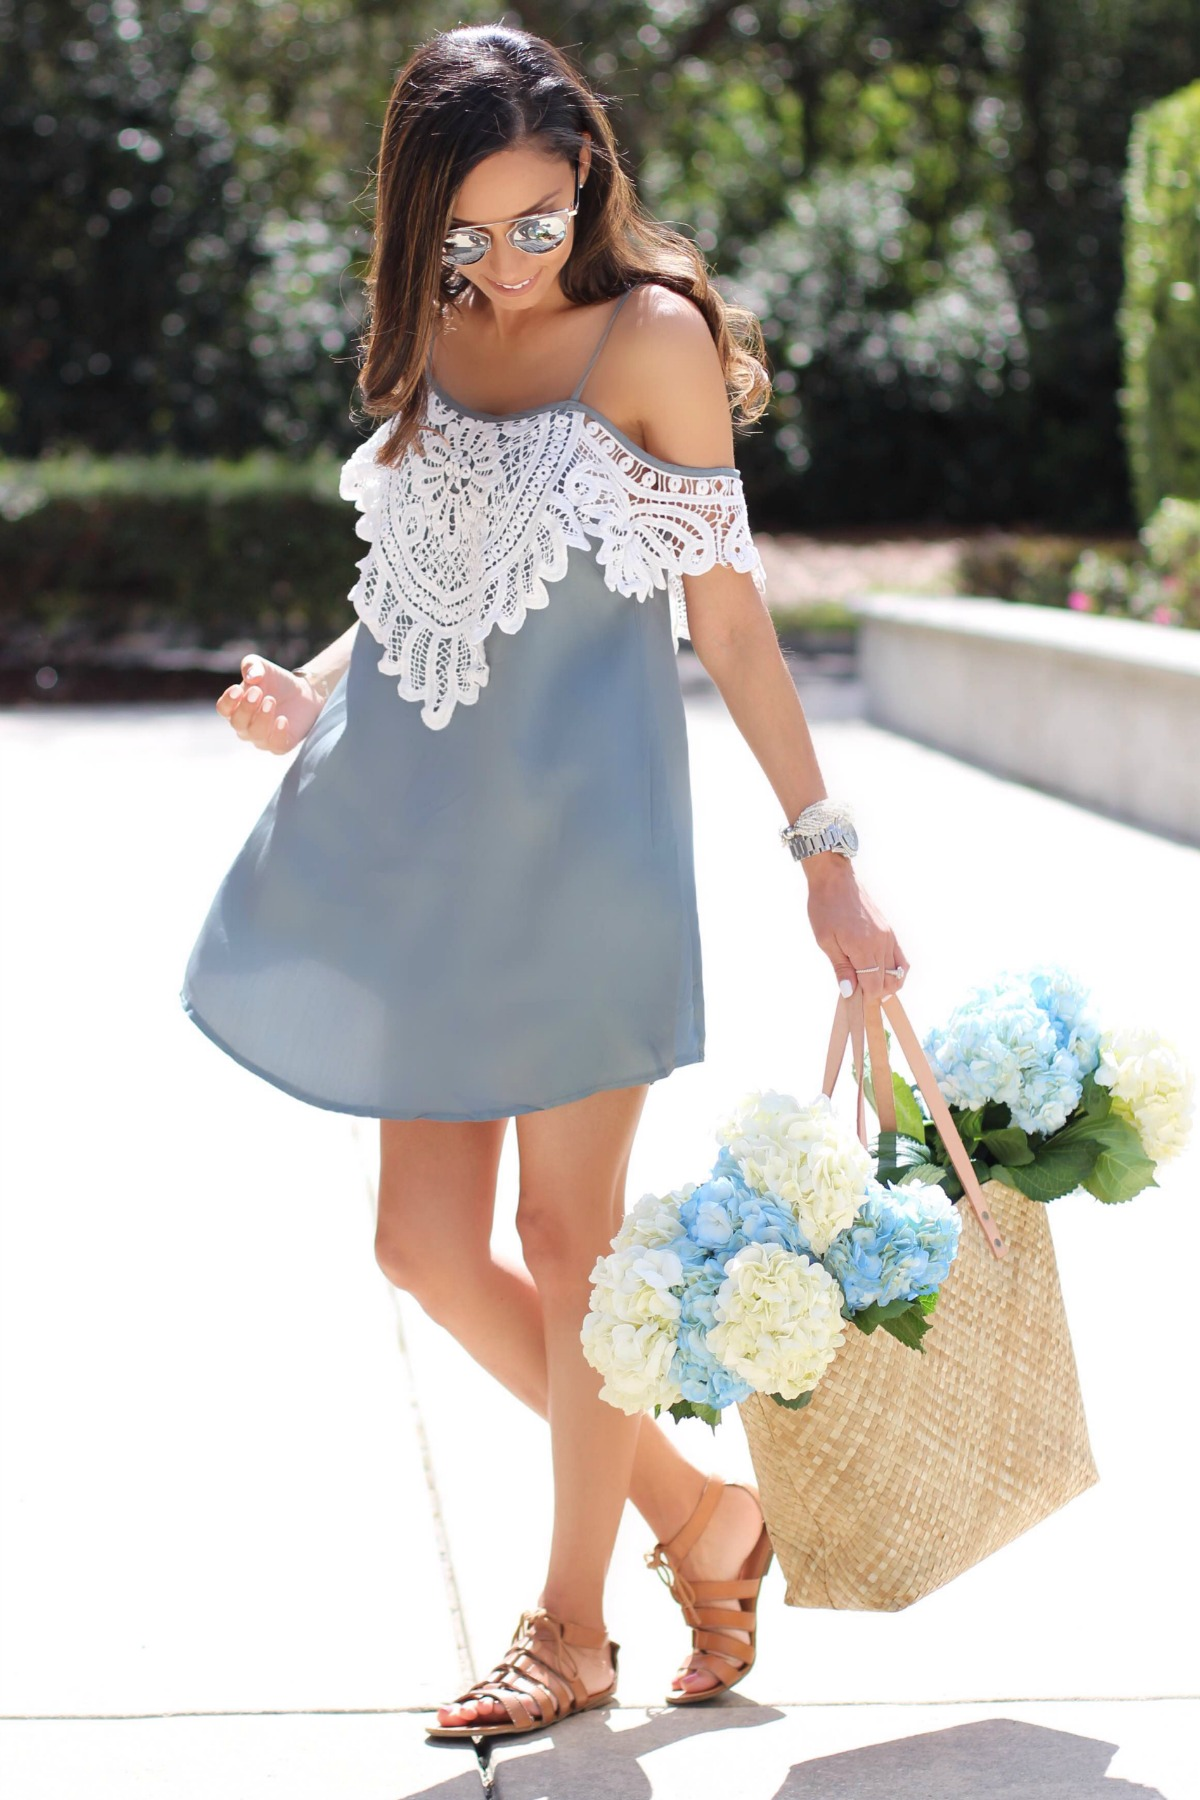 Off the shoulder tunic with lace detail and leather flats